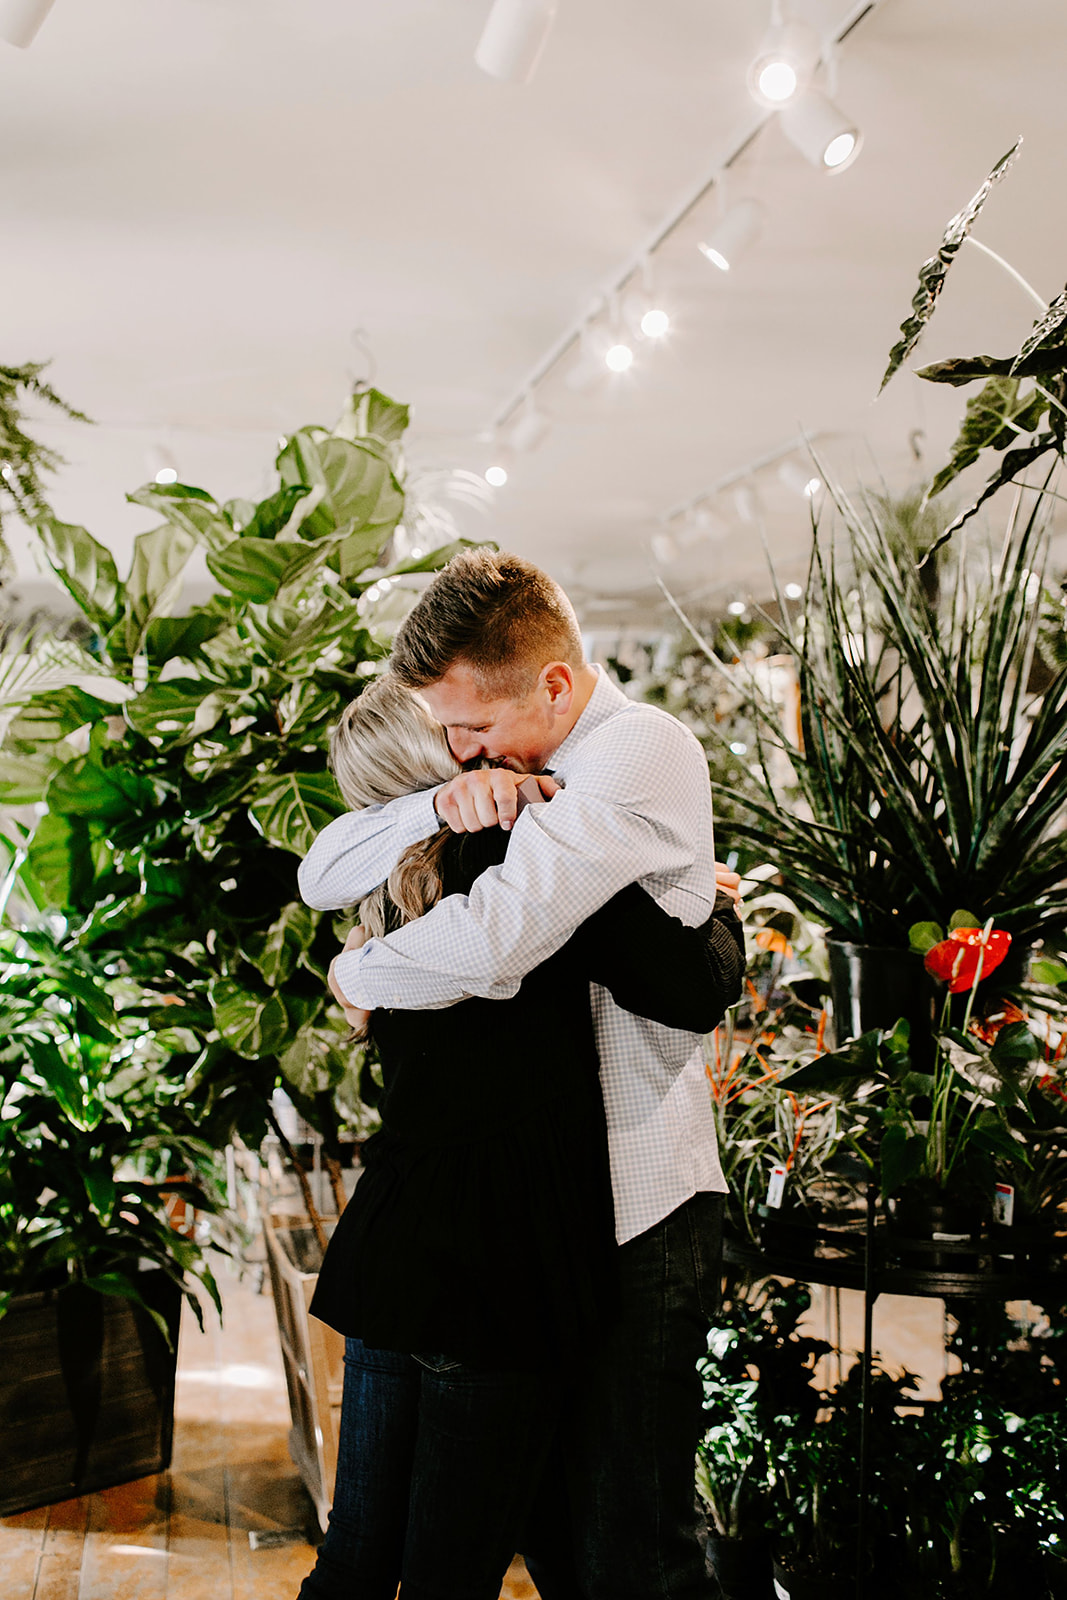 Lindy and JT Proposal at Allisonville Nursery in Indianapolis Indiana by Emily Elyse Wehner Photography LLC-57.jpg